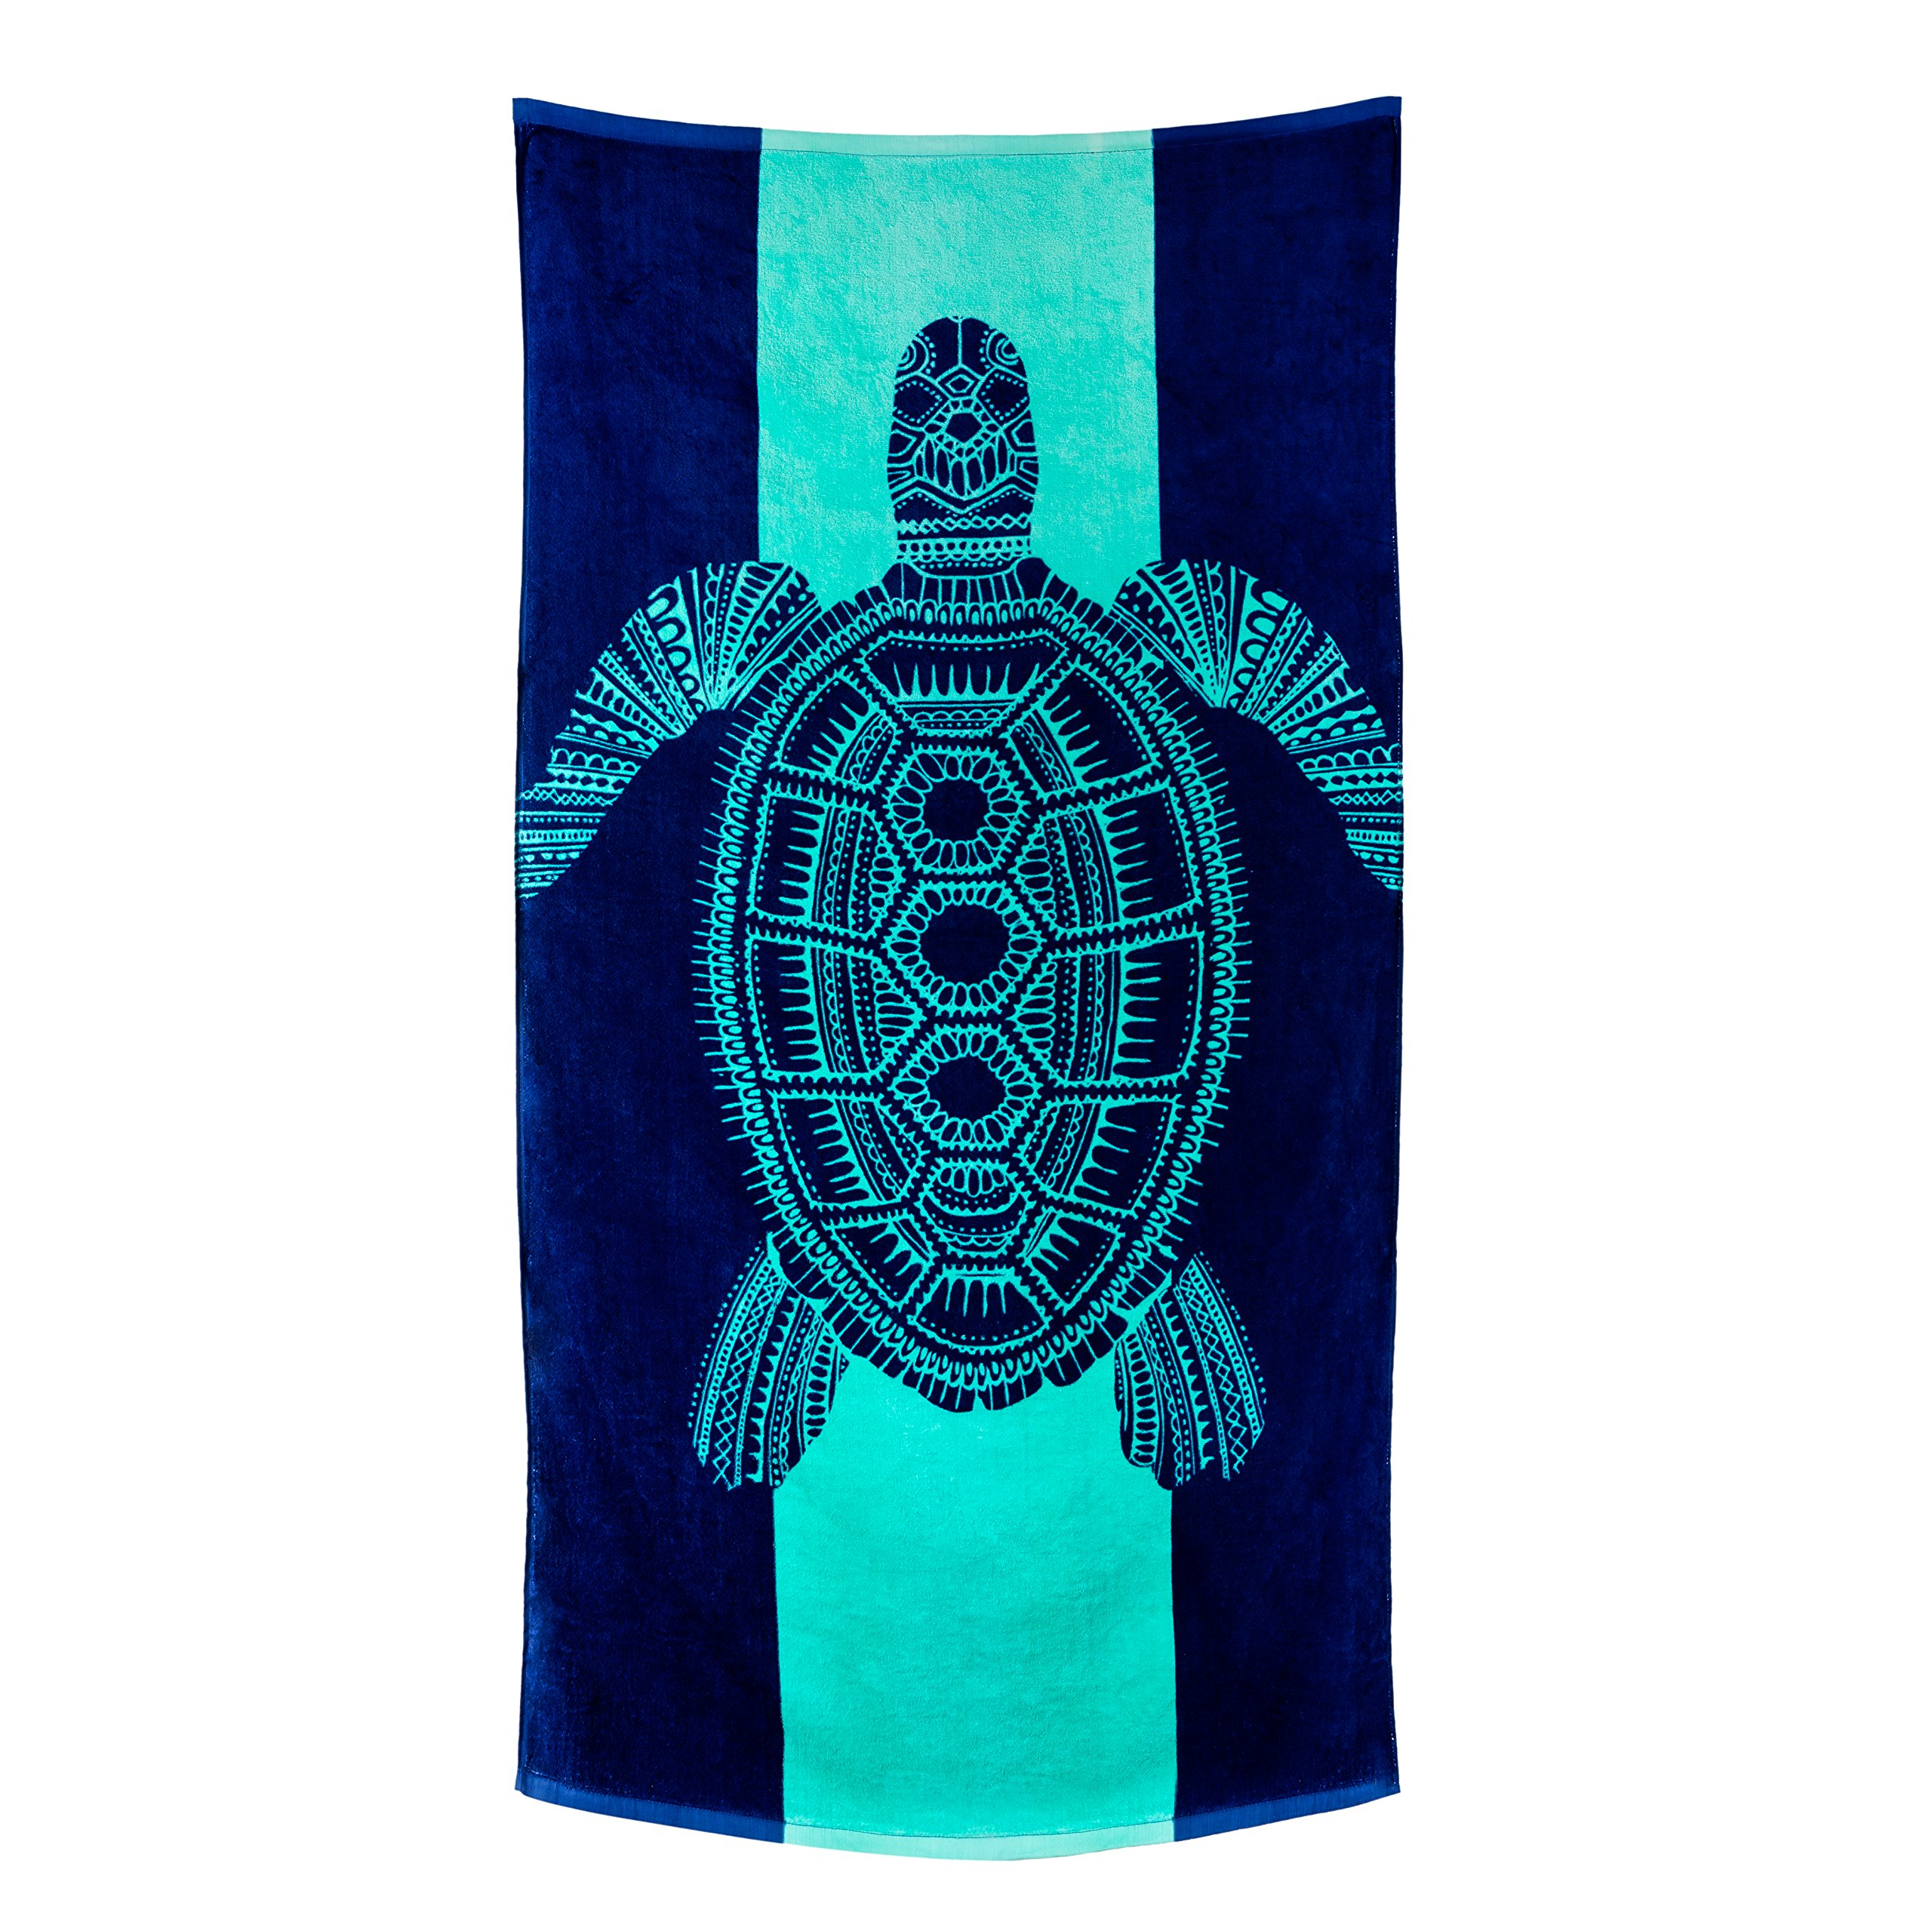 Nova Blue Turtle Beach Towel - Tropical Blue Colors With A Unique Fun Design Extra Large (62x33) Made From 100% Cotton For Kids & Adults